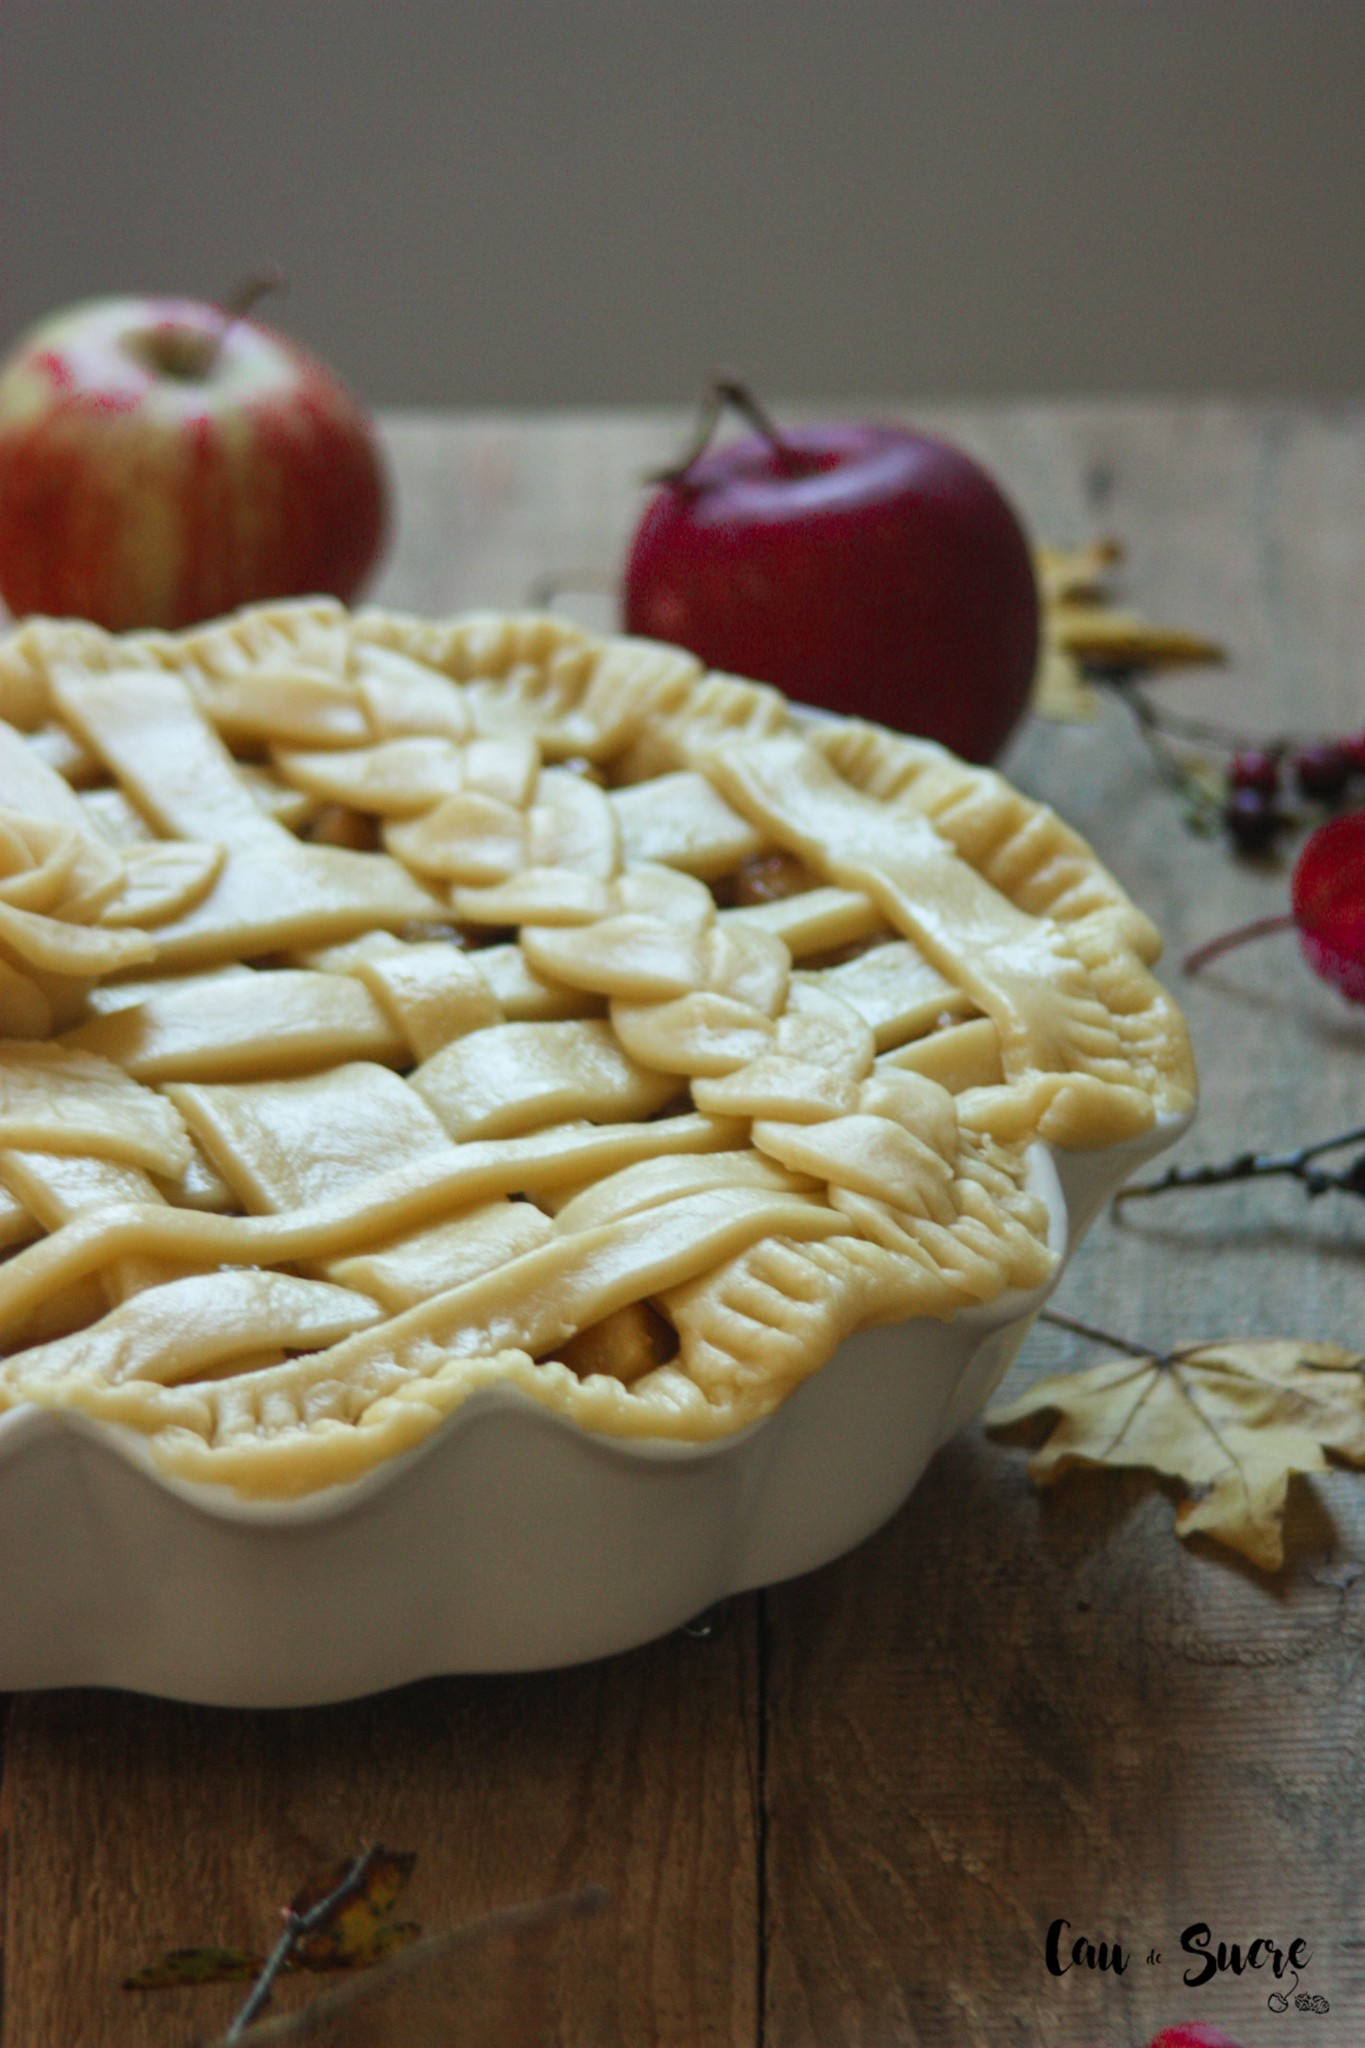 Apple-pie-2